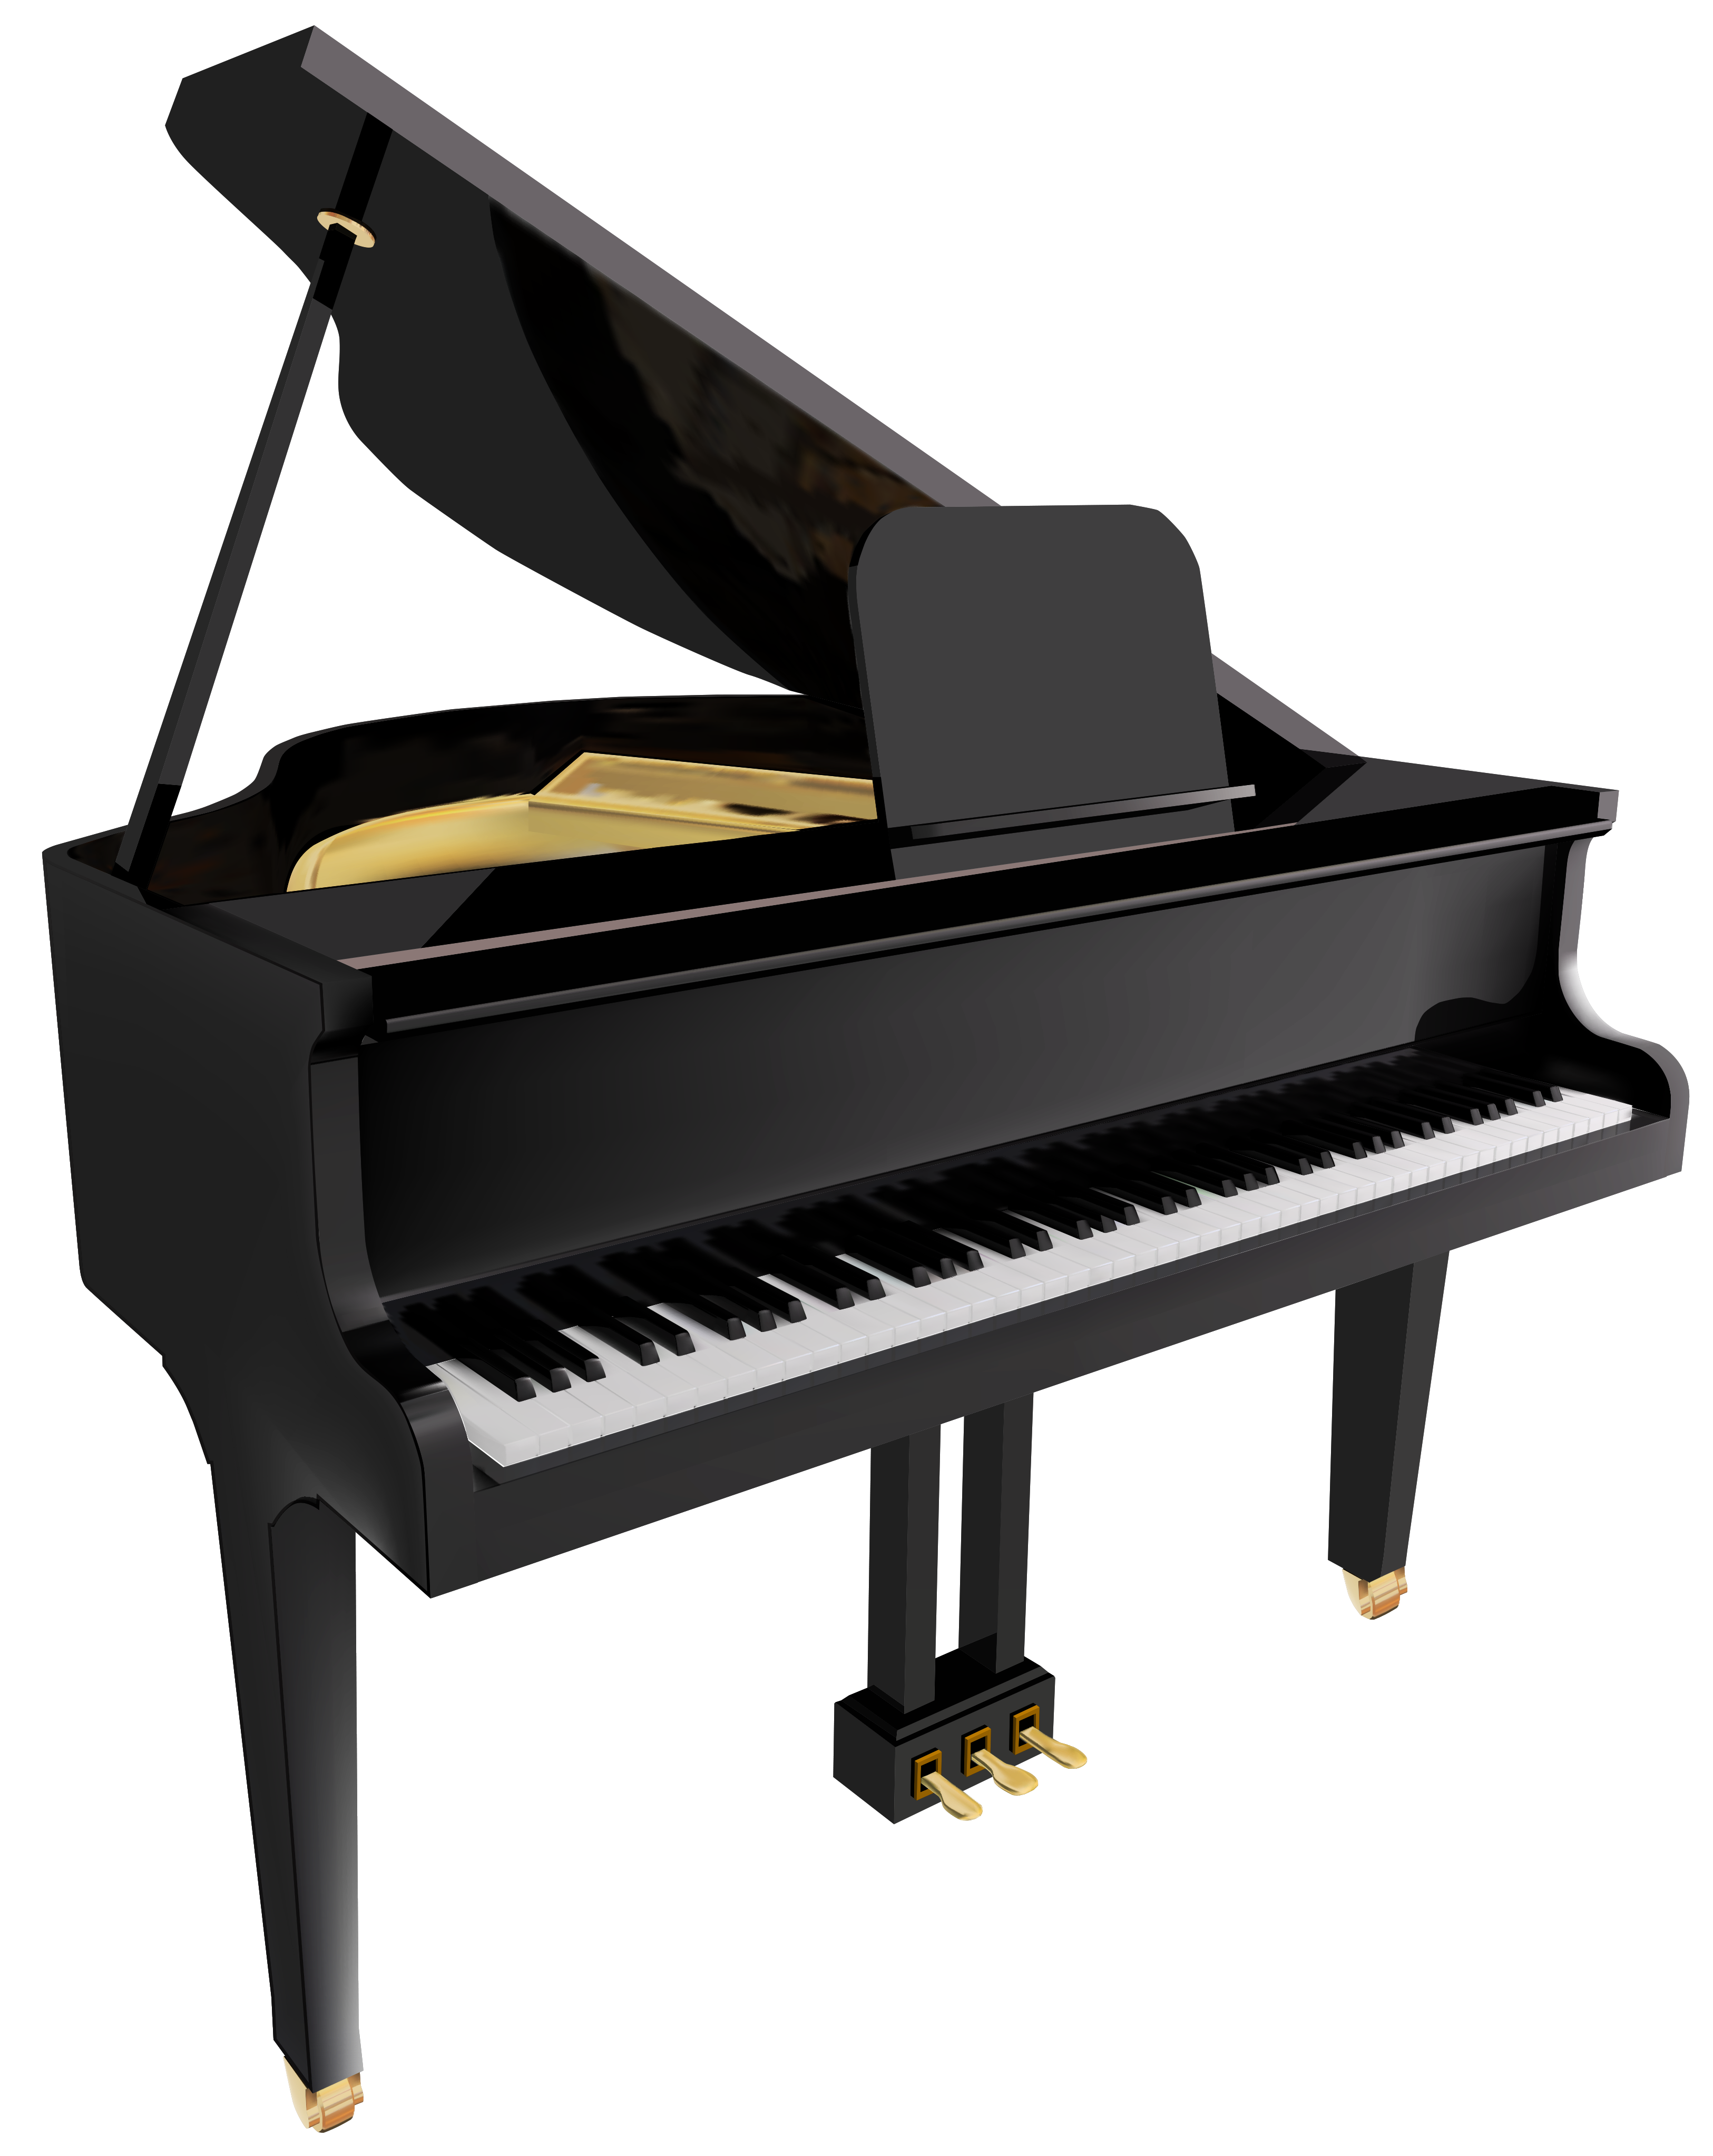 Organs clipart upright piano Free clipartcow Free Clipartix Piano